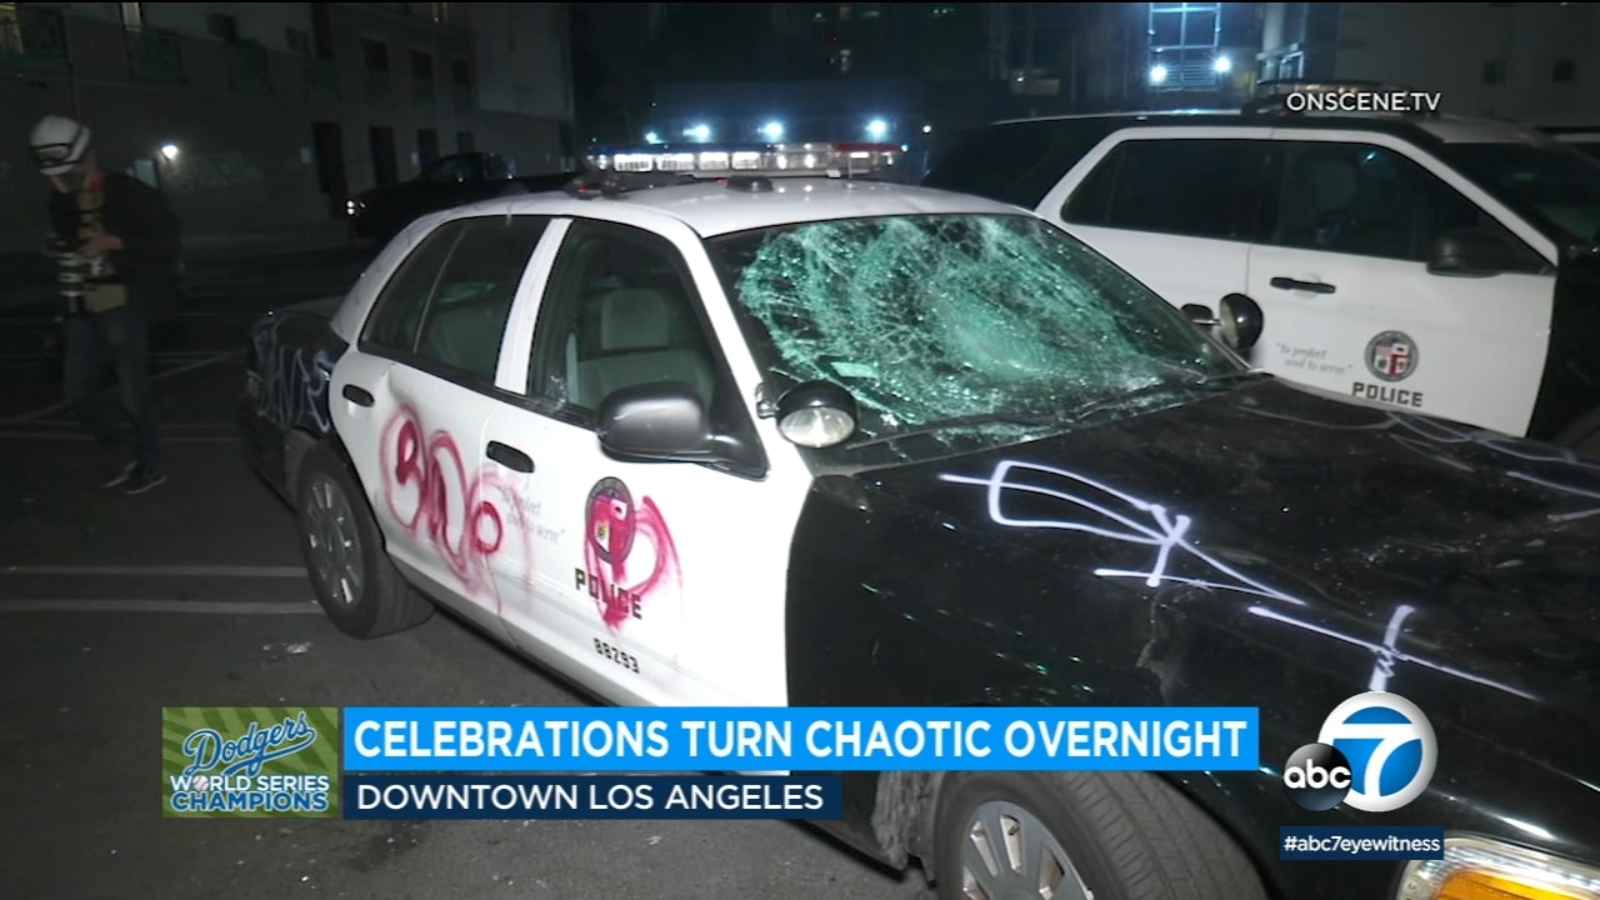 Dodgers celebrations after World Series victory turn unruly, violent in downtown Los Angeles; 8 arrested amid looting, vandalism - KABC-TV